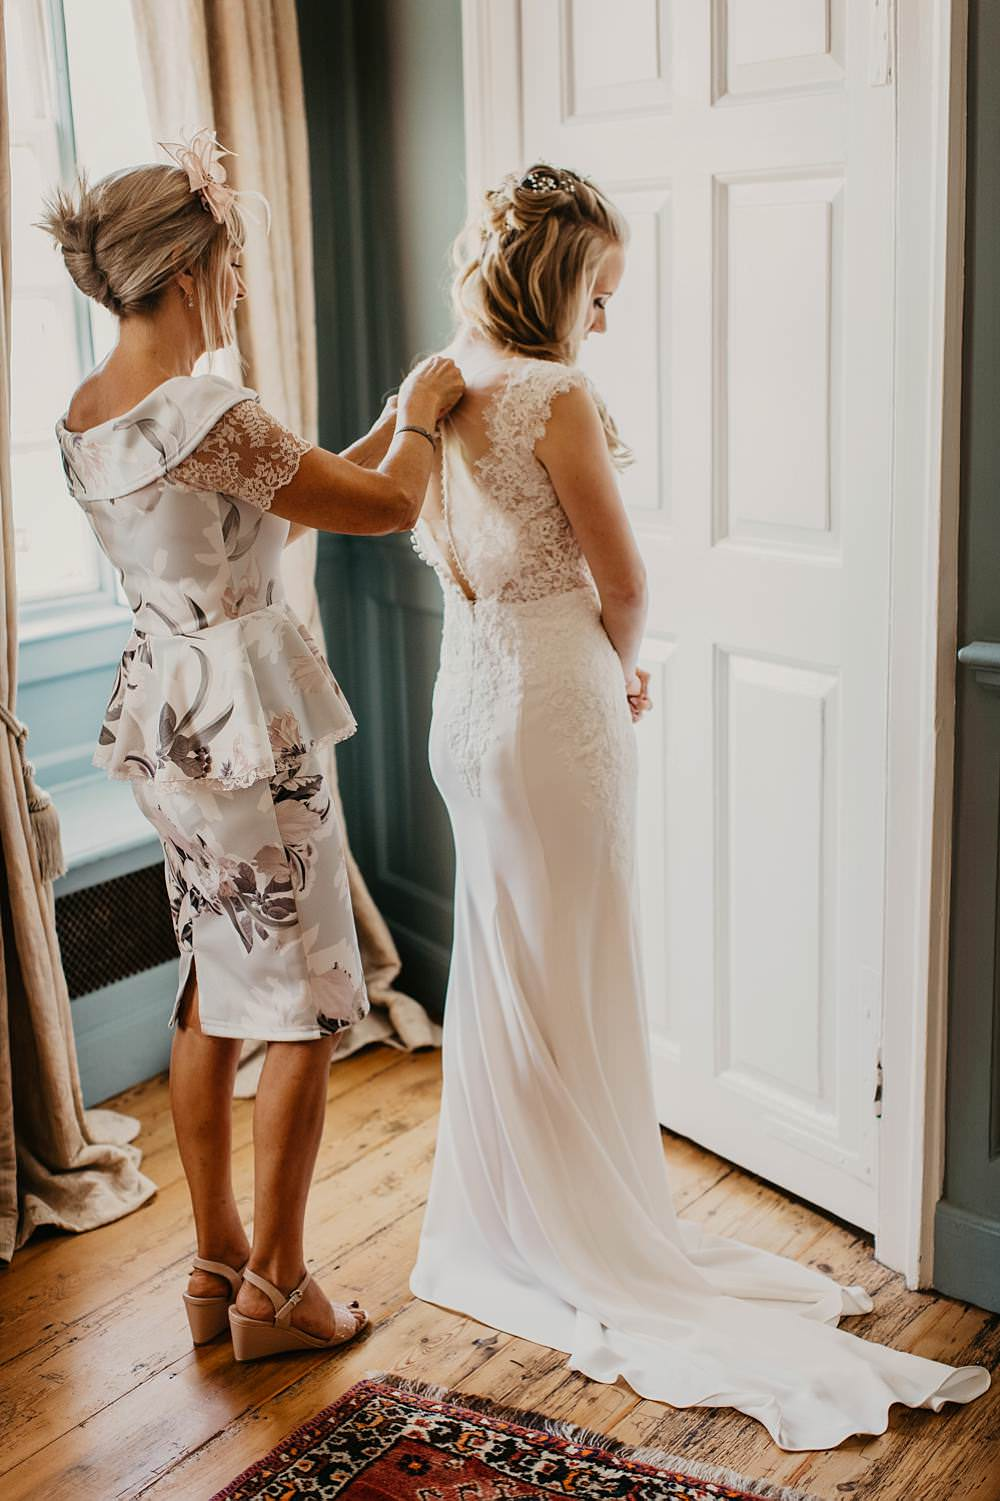 Dress Gown Bride Bridal Fit and Flare Fishtail Wed2B Eggington House Wedding October Willis Photography